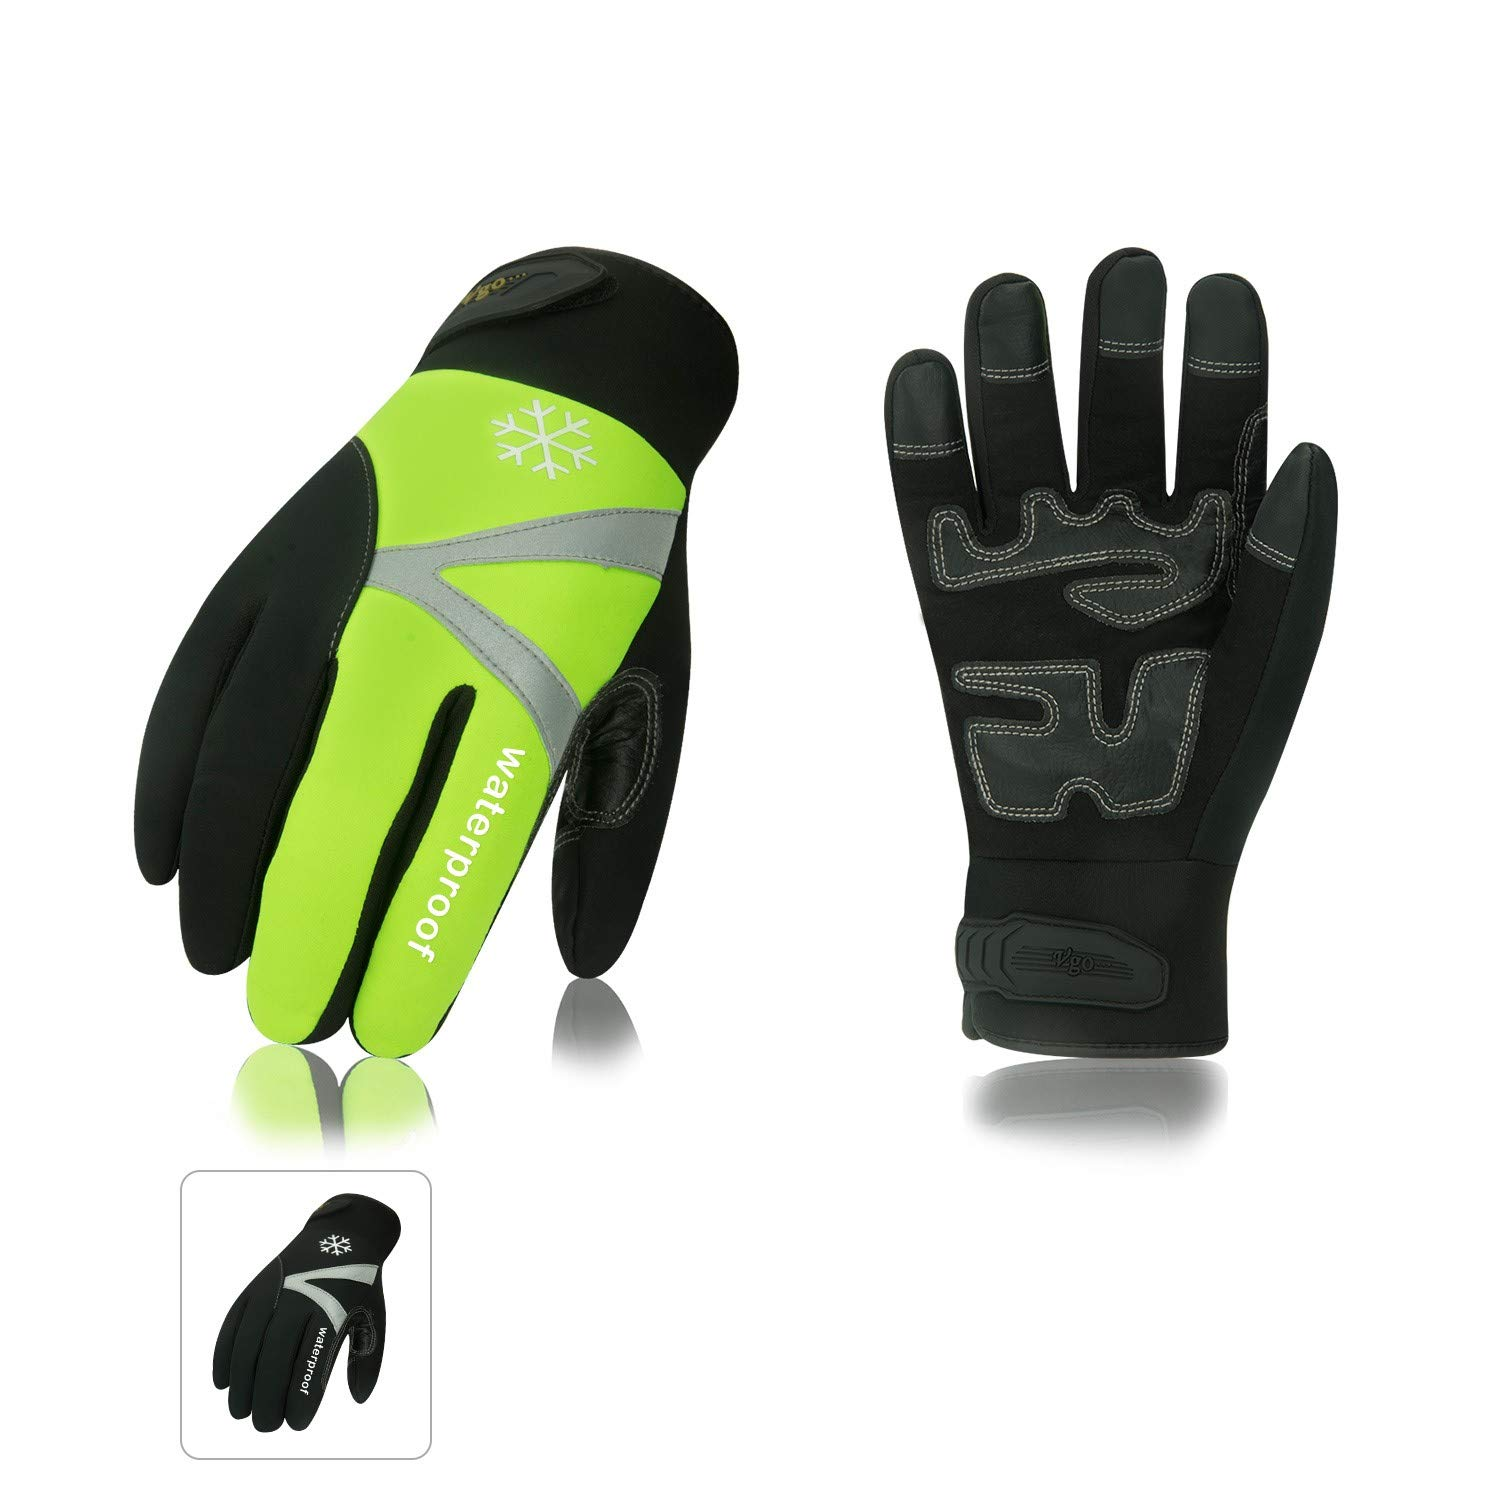 Vgo 2Pairs -4℉ or above 3M Thinsulate C100 Lined High Dexterity Touchscreen Synthetic Leather Winter Warm Work Gloves, Waterproof Insert (Size L, Black,Fluorescent Green,SL8777FW) by Vgo...